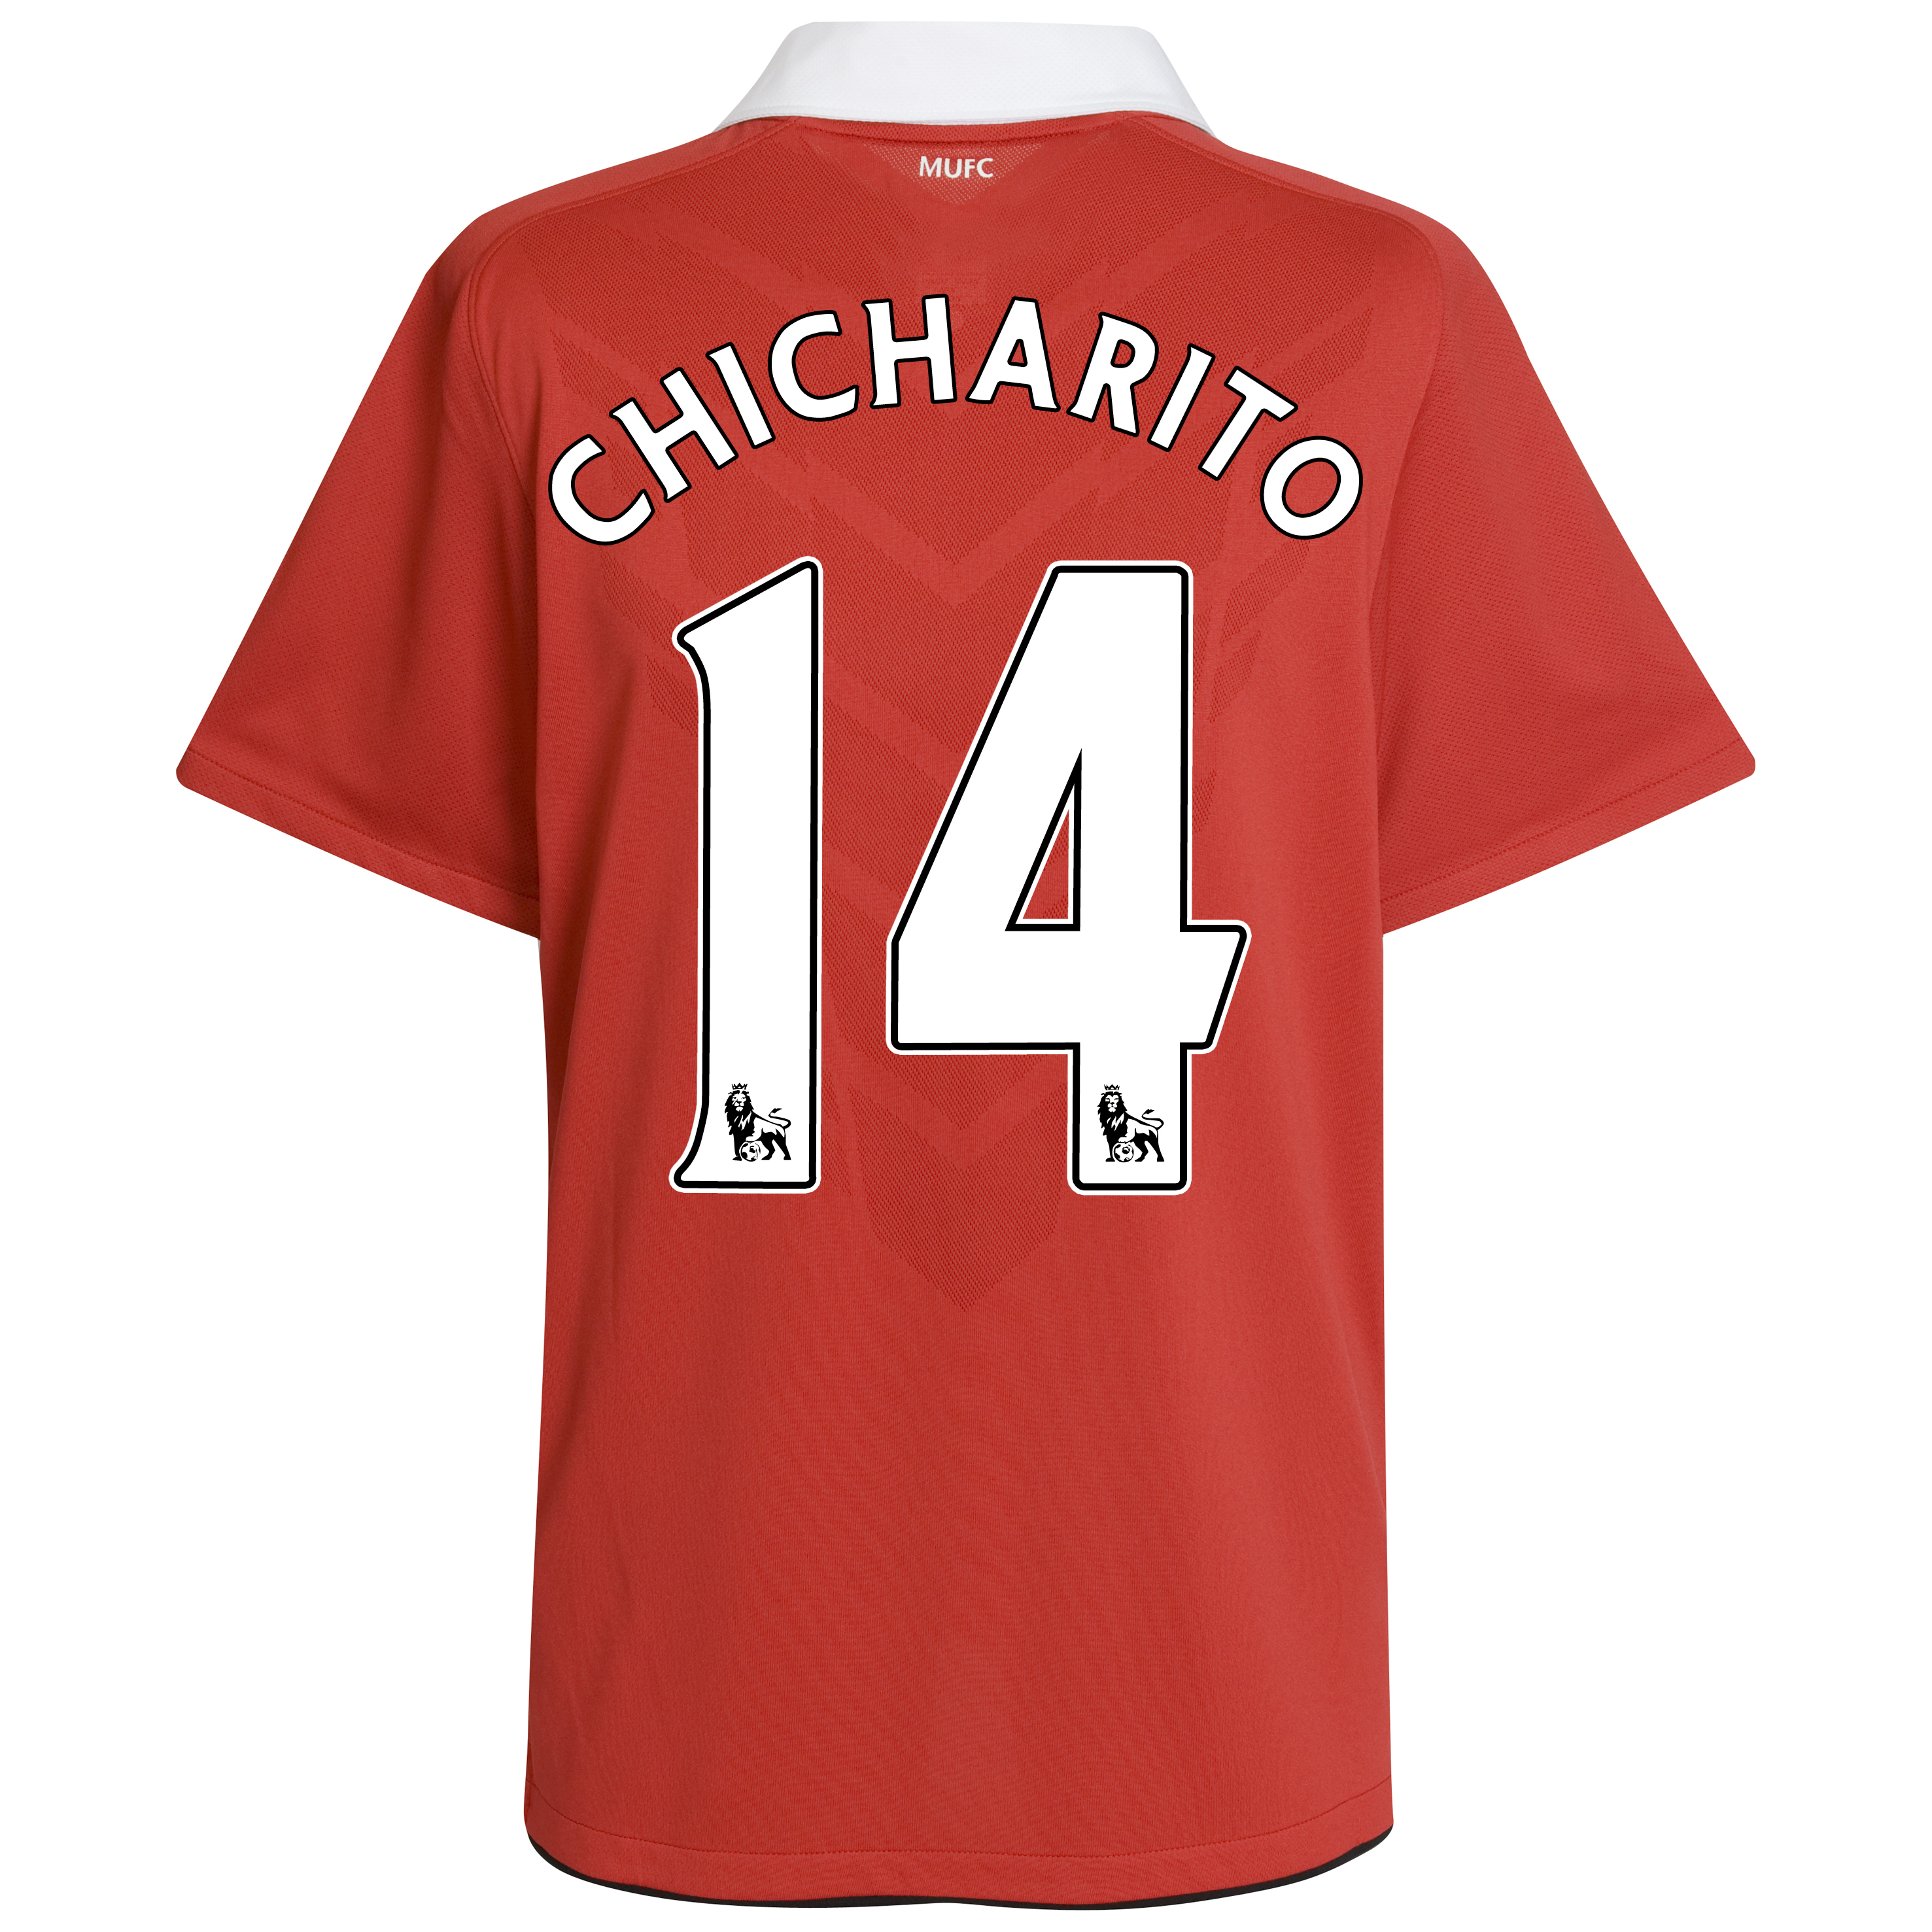 Manchester United Home Shirt 2010/11 with Chicharito 14 printing